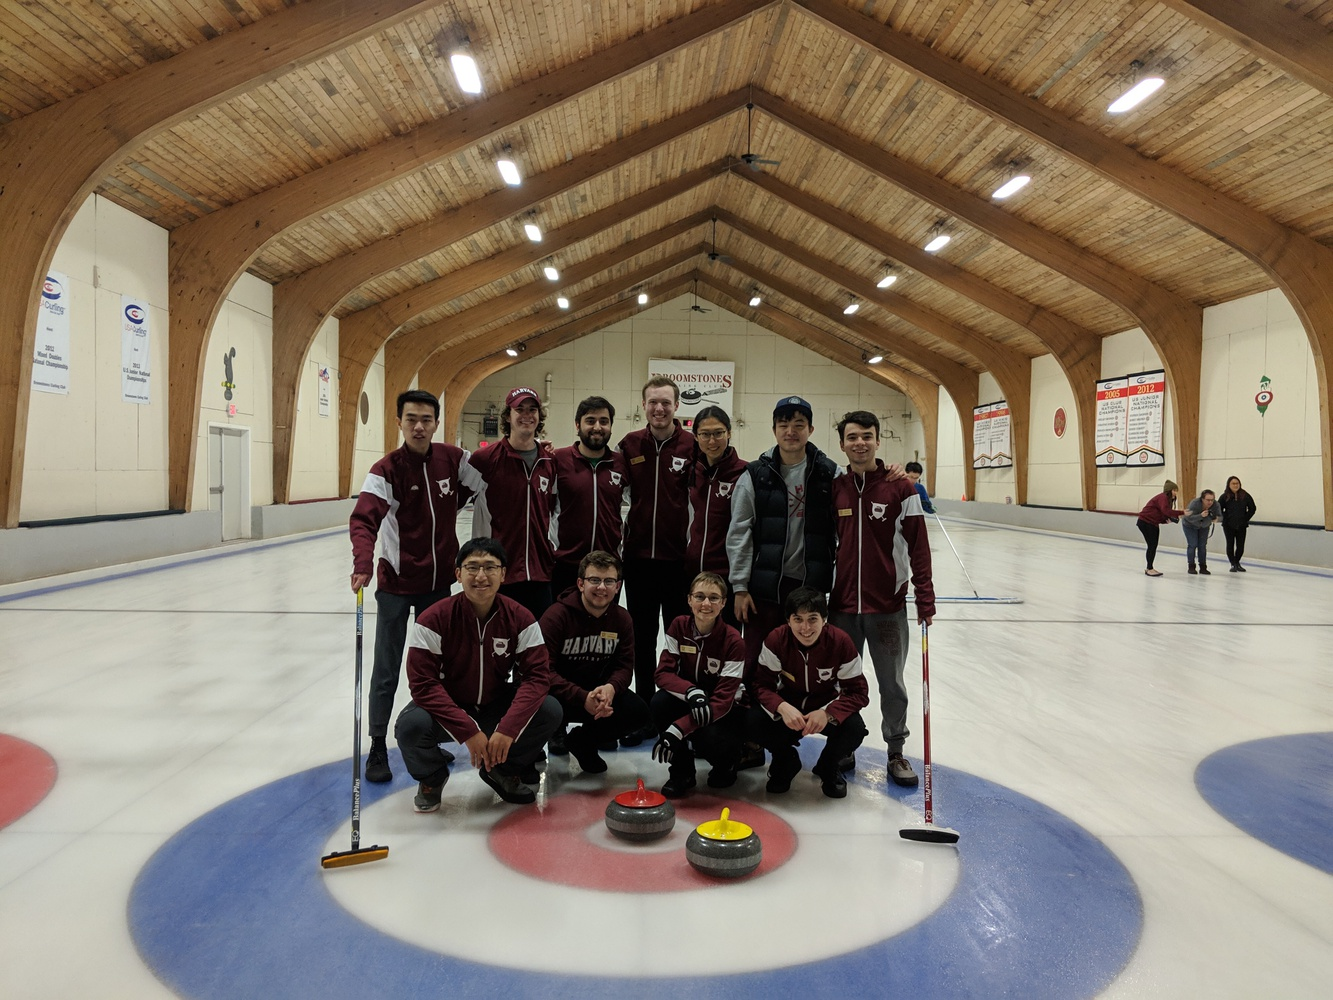 The Harvard Curling Club poses holding their equipment: stones and brooms used during competition.